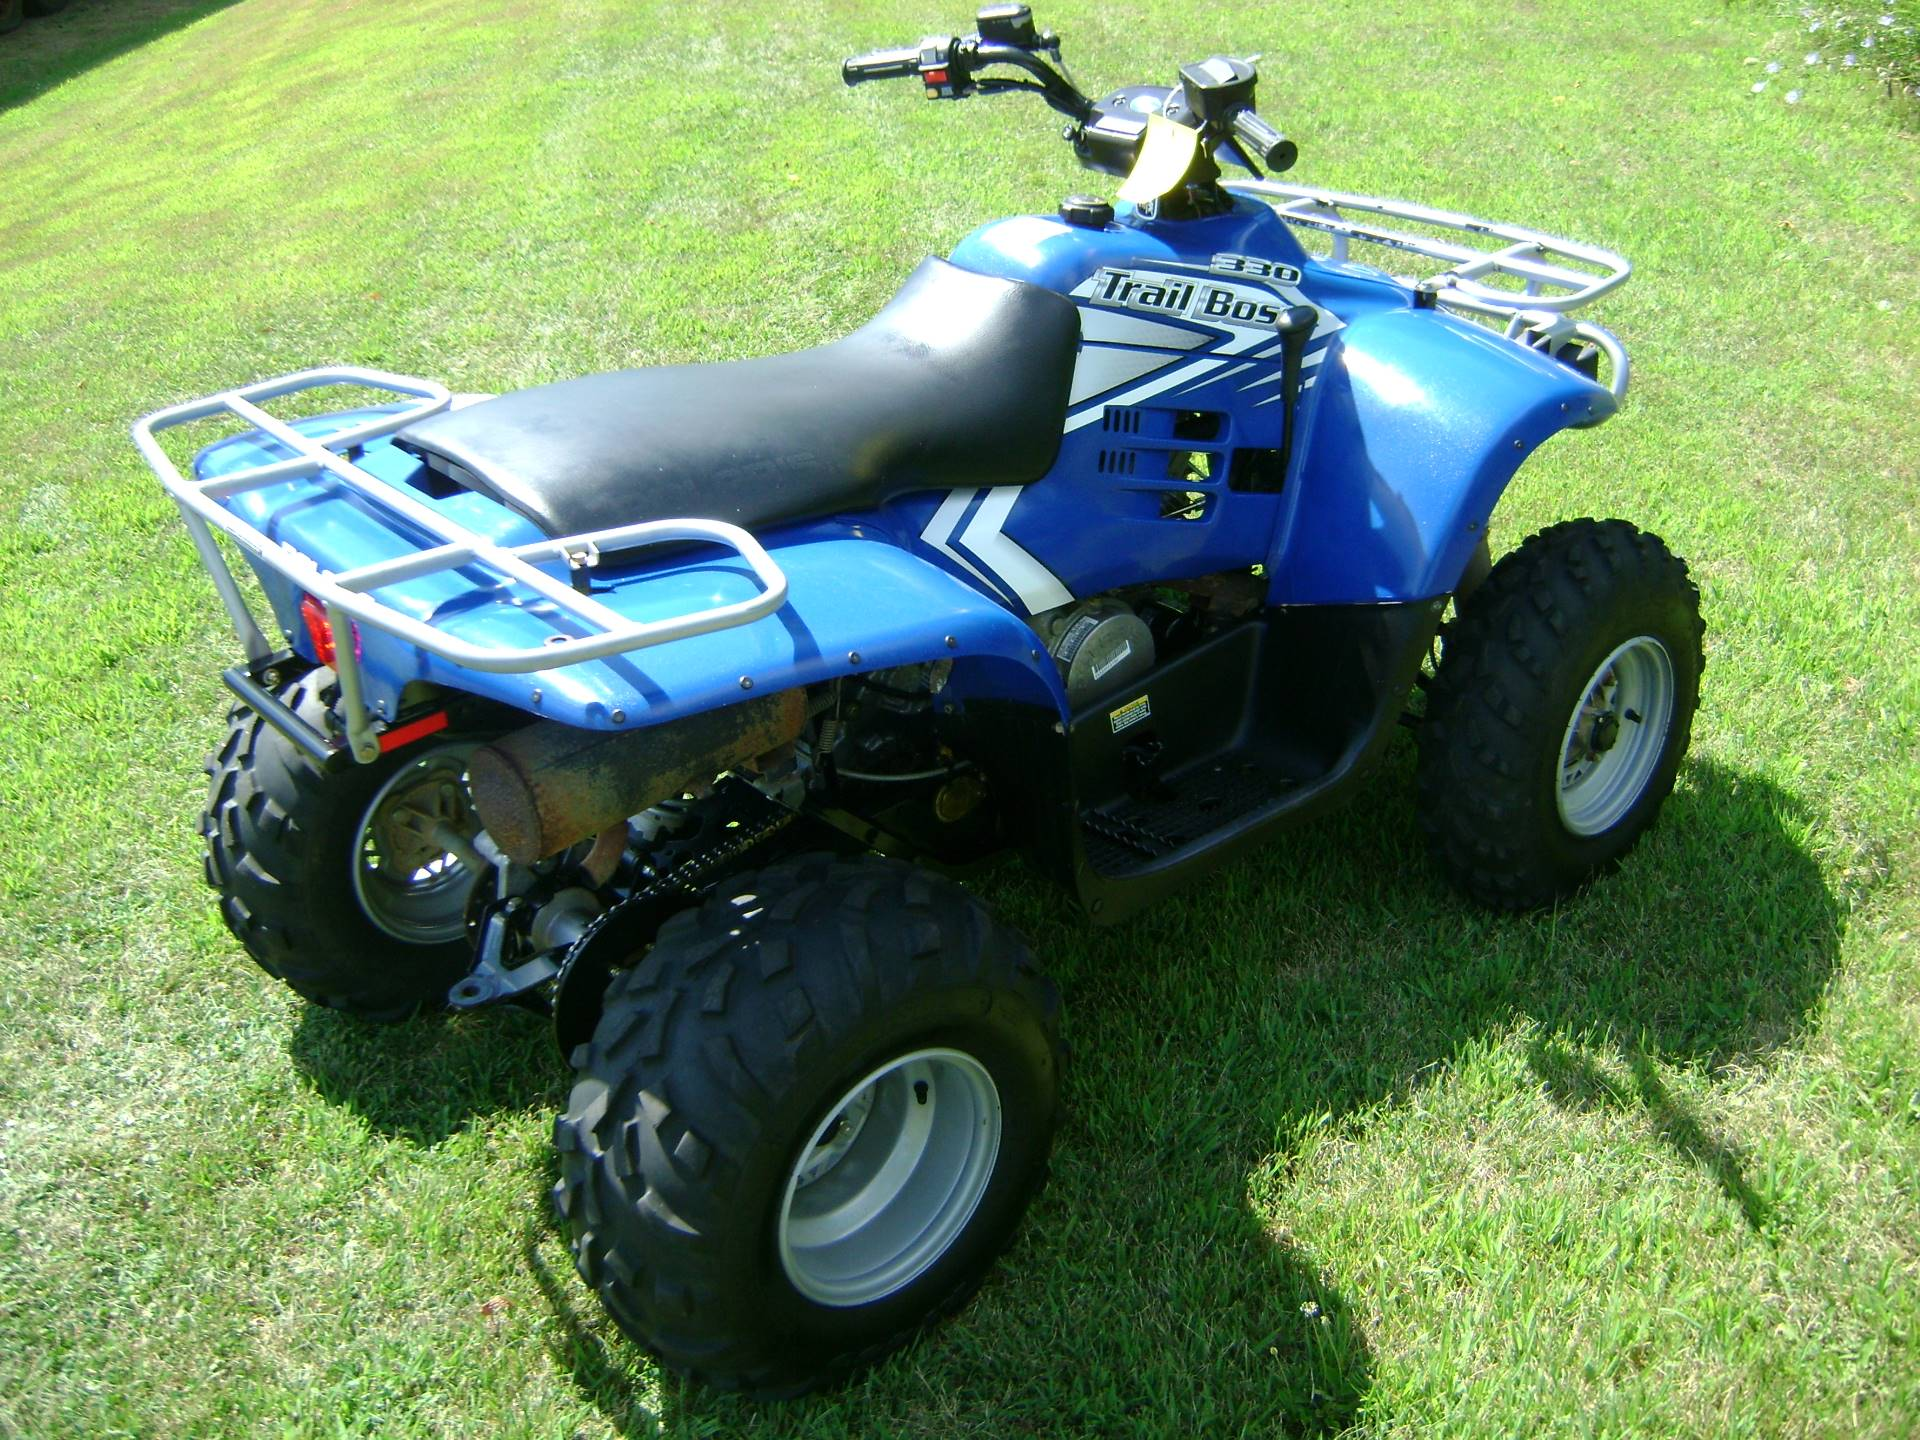 2004 Polaris TRAILBOSS 330 in Freeport, Illinois - Photo 4